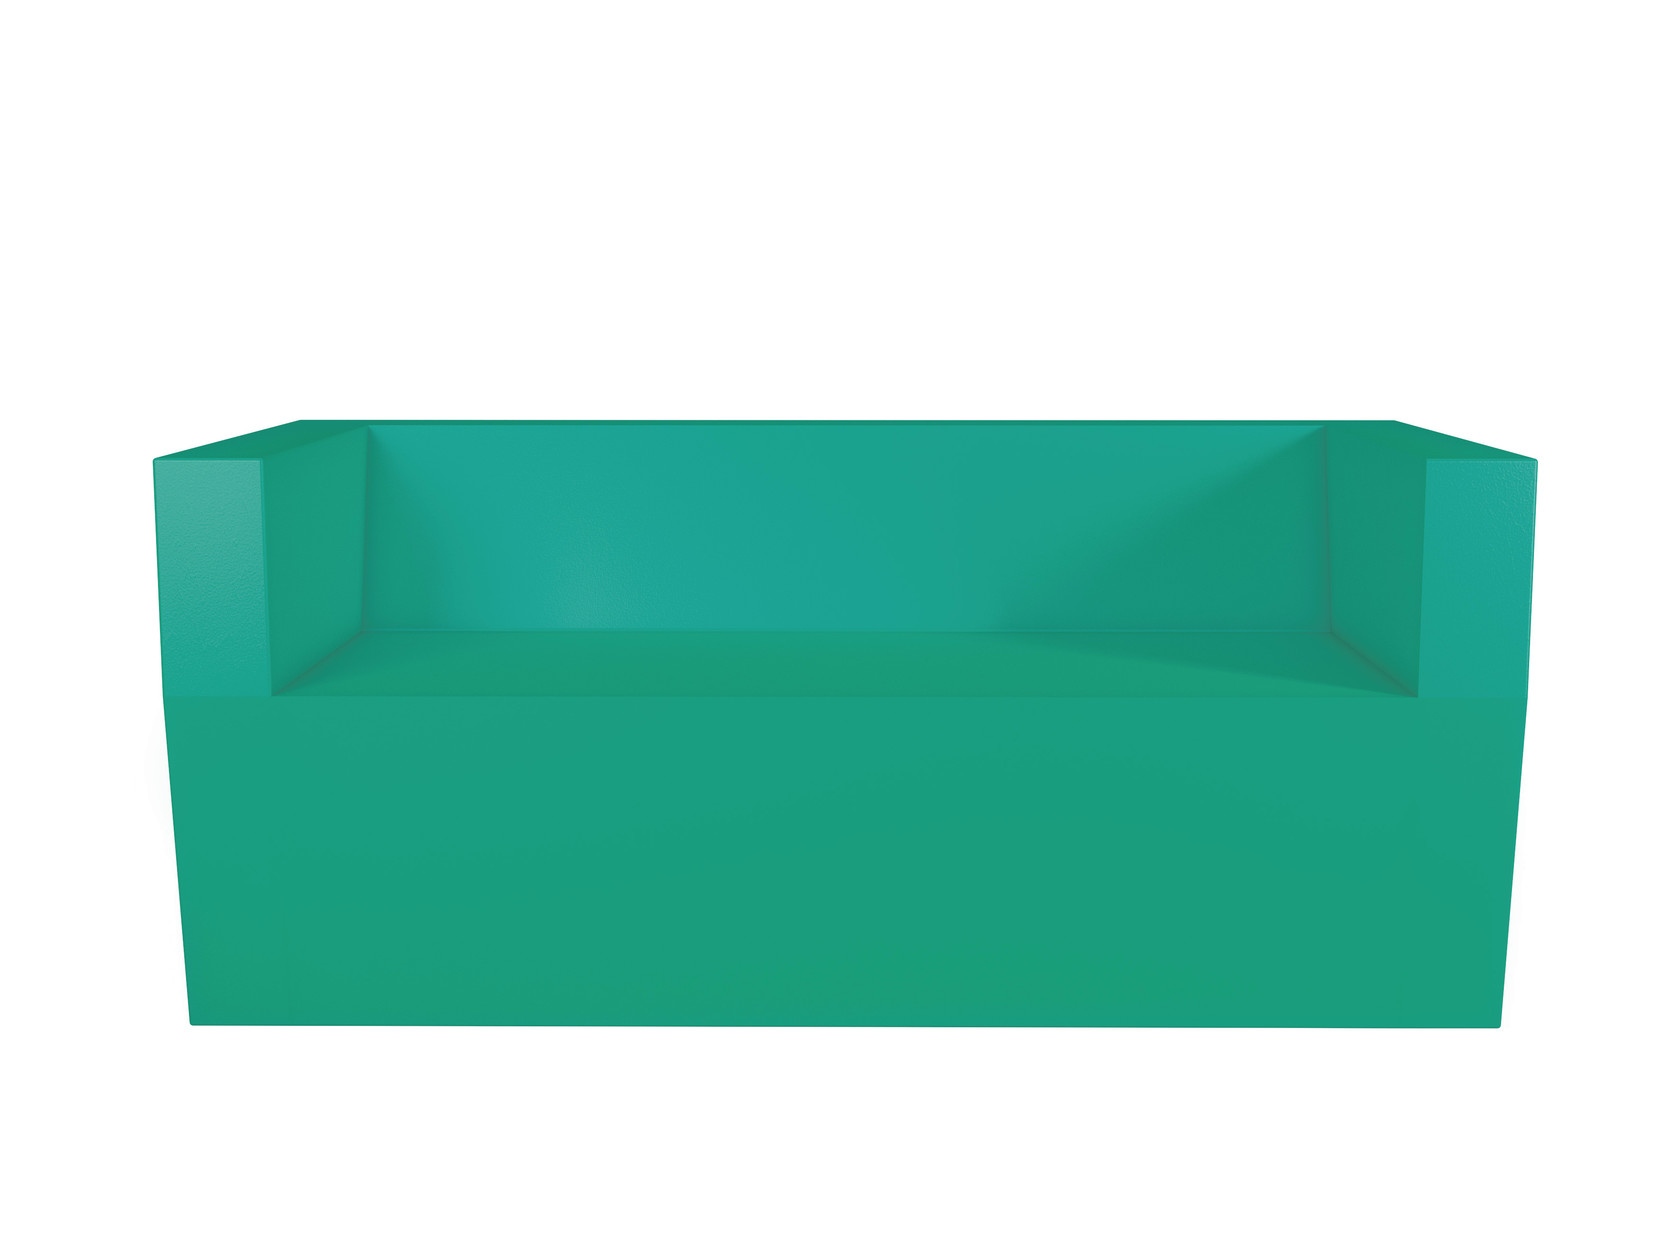 foam block sofa bed best material for stains 150 collection by stratta design jorge herrera